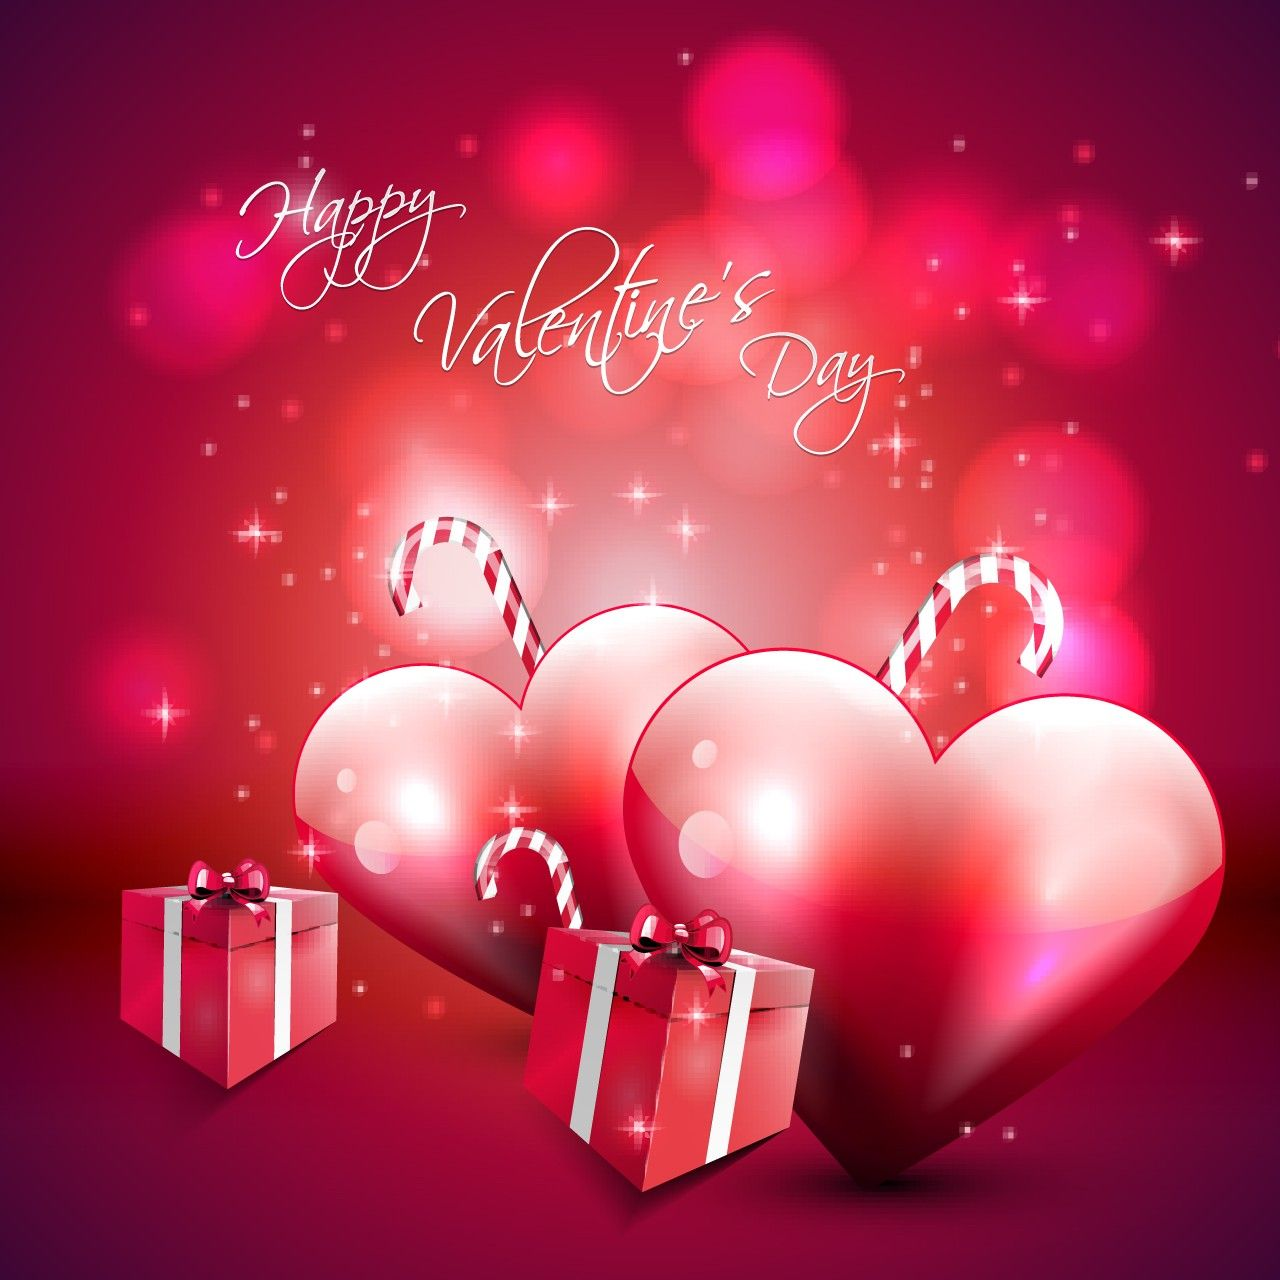 80 Cute Valentine Desktop Wallpapers   Download at WallpaperBro 1280x1280